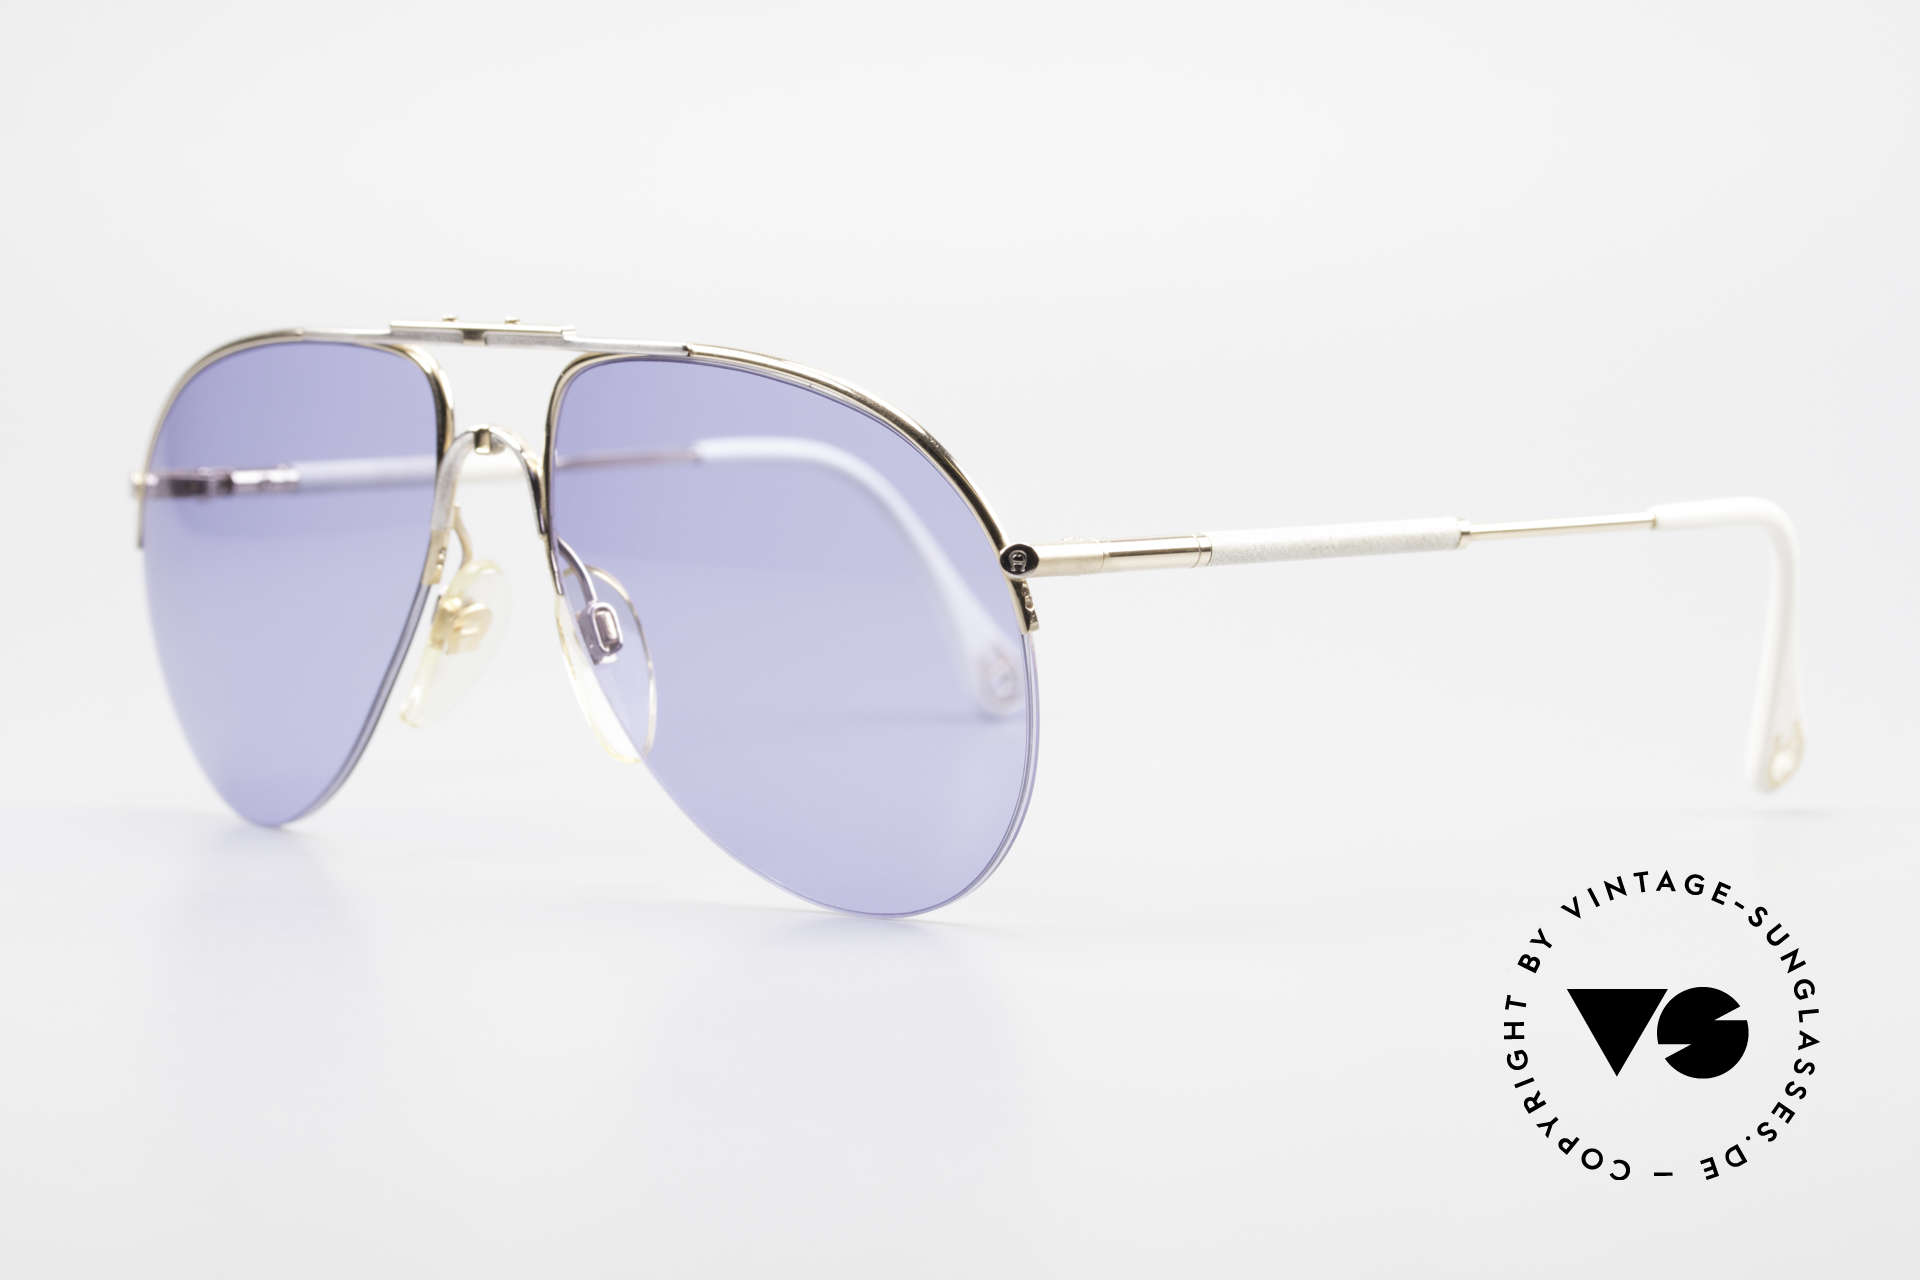 Aigner EA2 Rare 80's Vintage Sunglasses, outstanding craftsmanship and with serial number 9137, Made for Men and Women